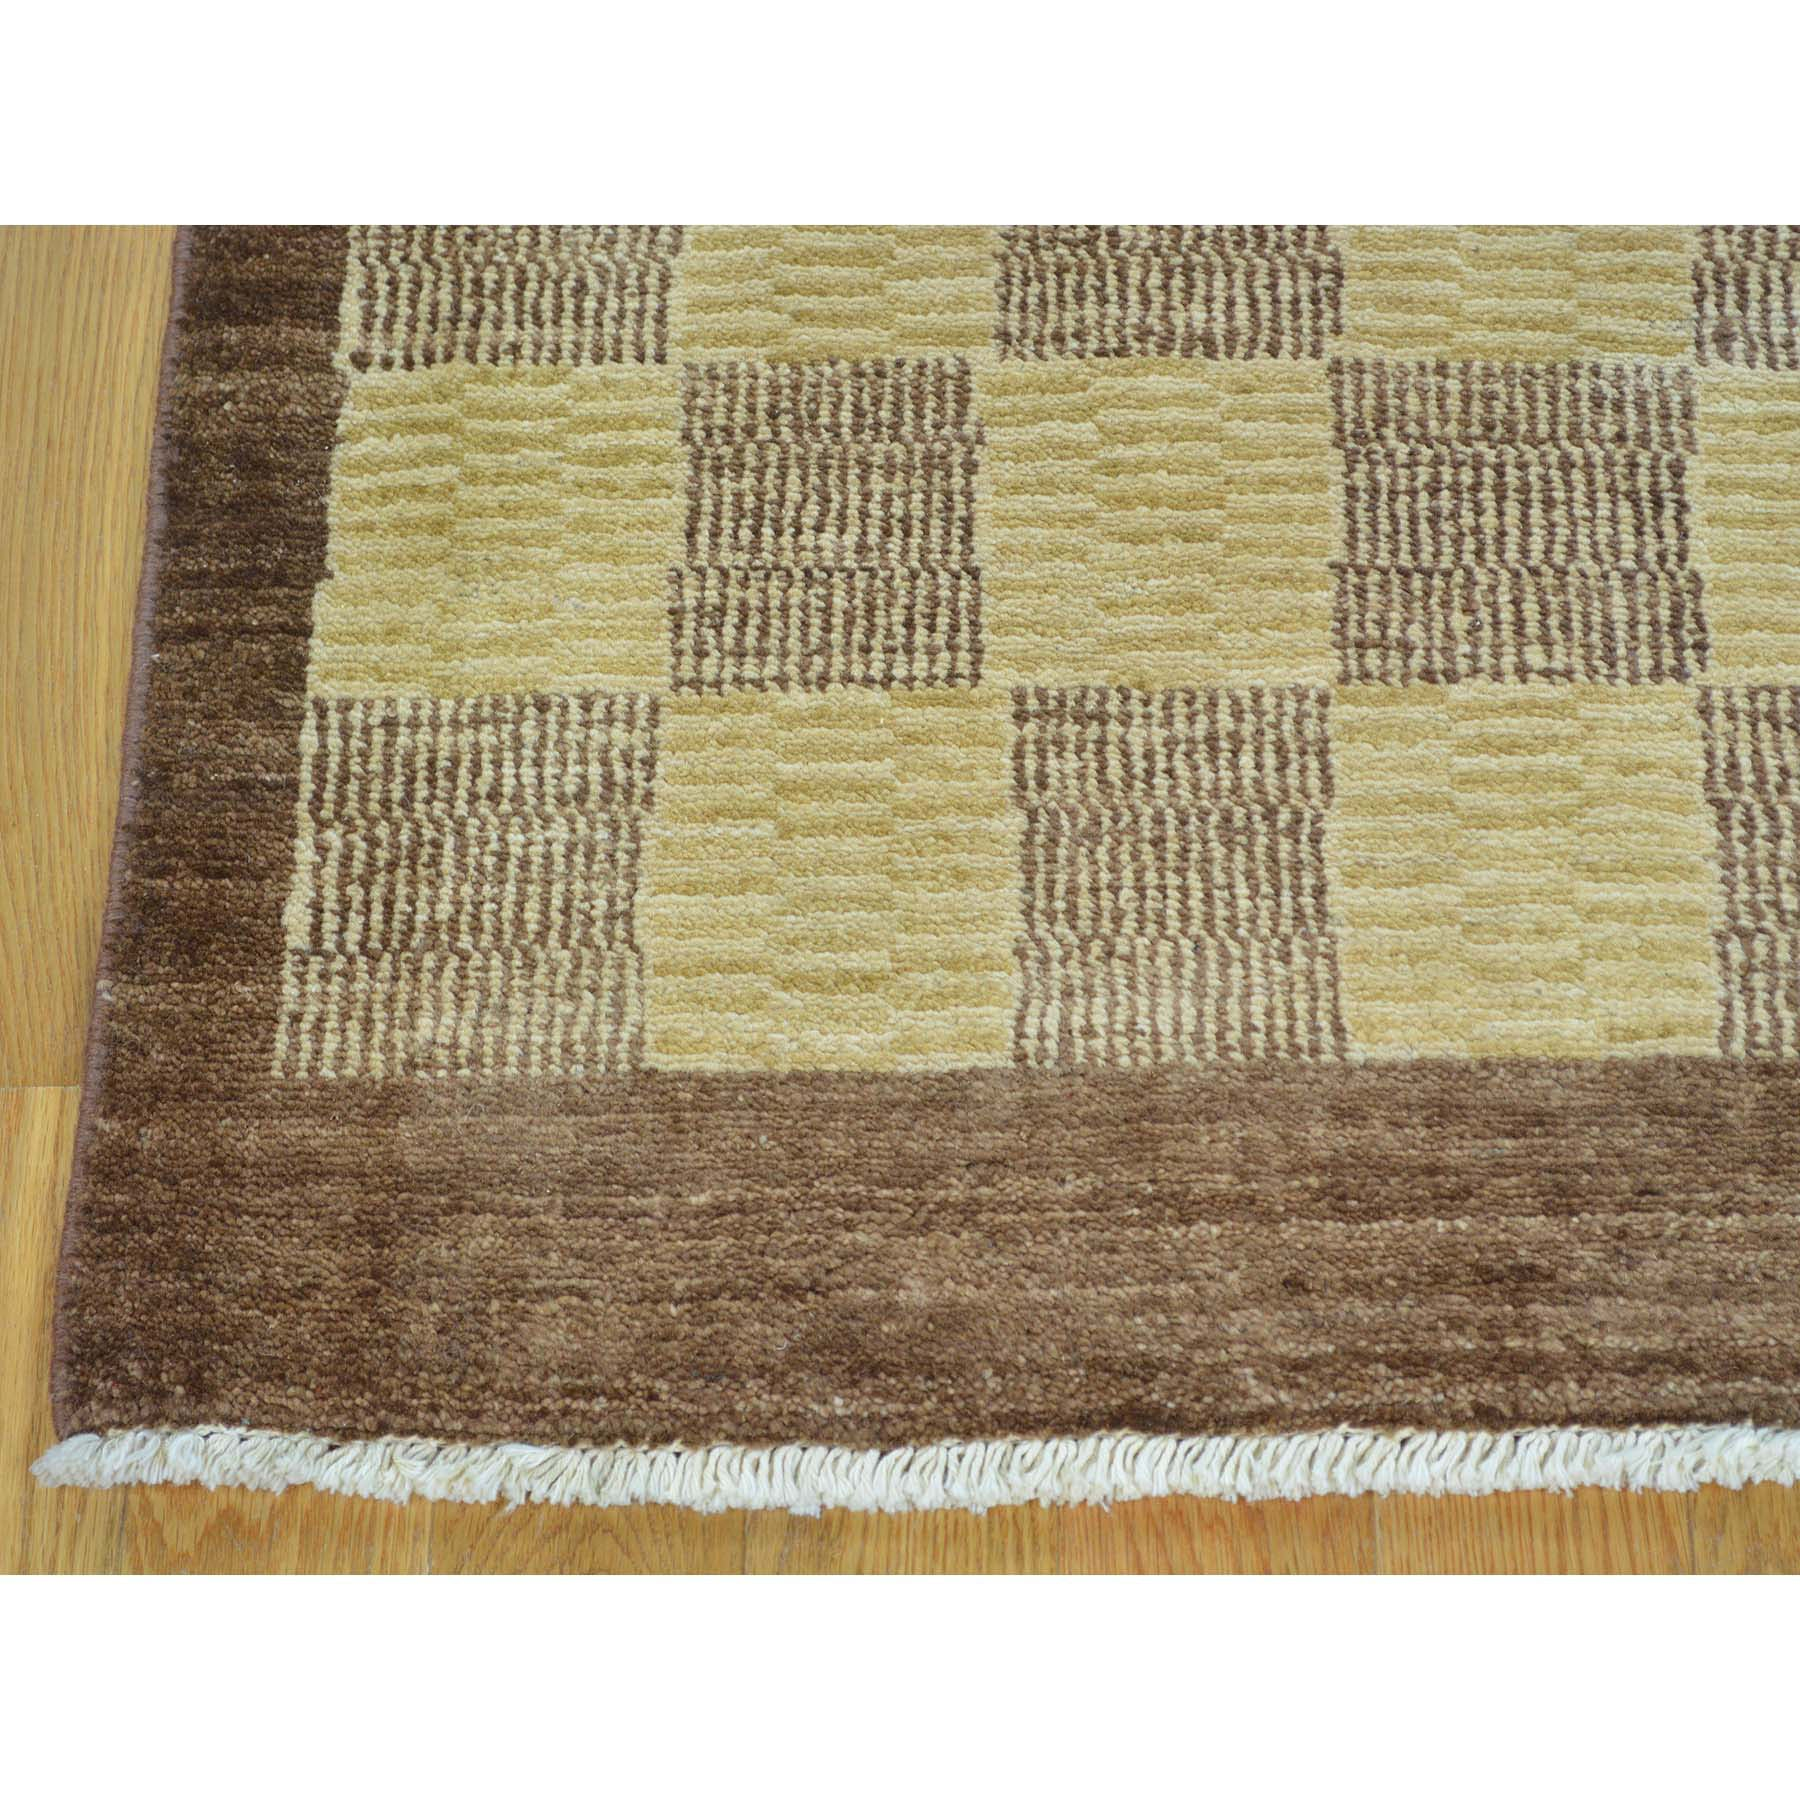 "Handmade Modern and Contemporary Rectangle Rug > Design# SH26645 > Size: 3'-2"" x 5'-4"" [ONLINE ONLY]"